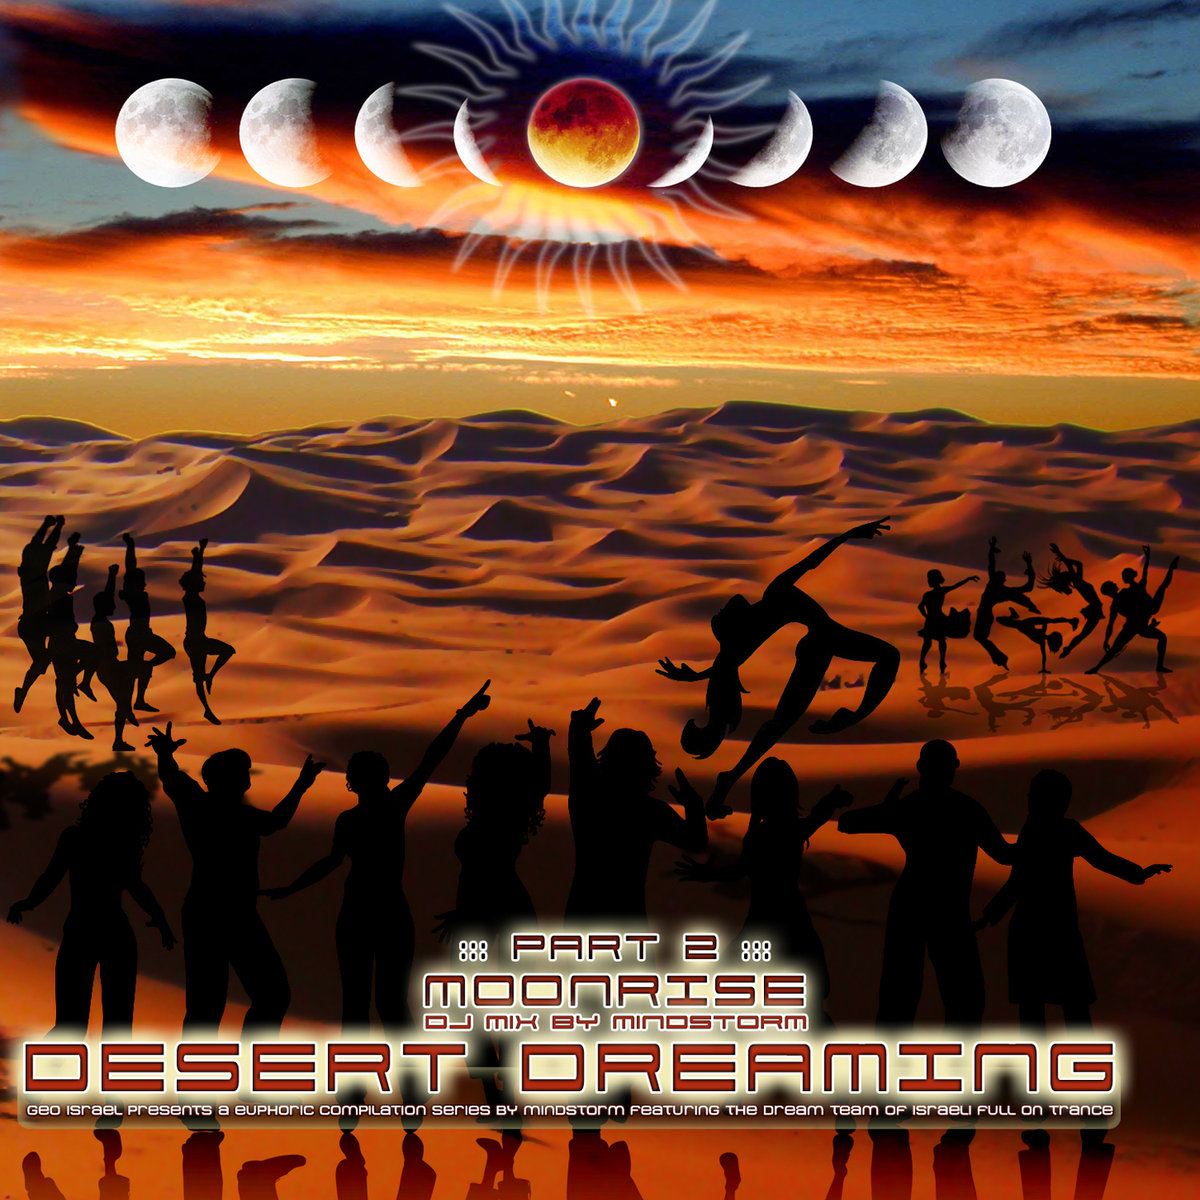 Black & White, Loud, & Chain Reaction - DMT Server @ 'Various Artists - Desert Dreaming Part 2: Moonrise (DJ Mix by Mindstorm)' album (electronic, goa)